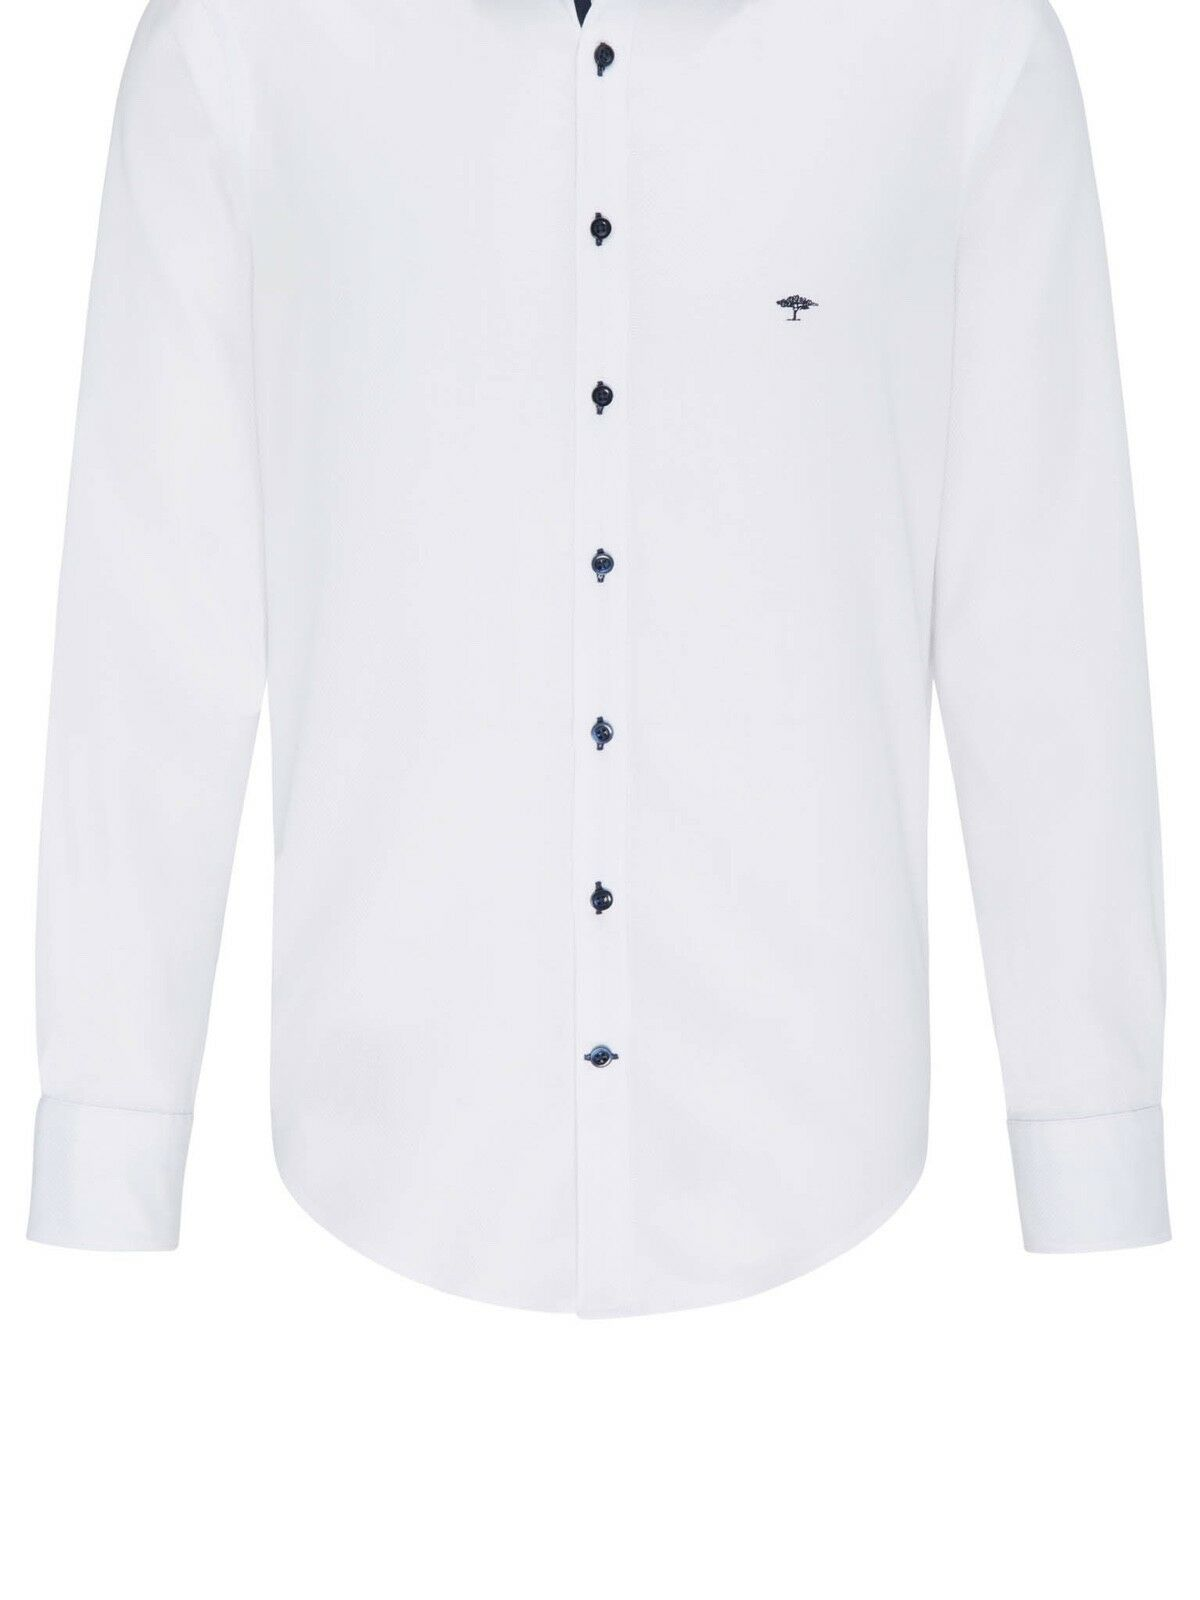 FYNCH HATTON® Premium Casual Structure Shirt White  - XXL New SS19